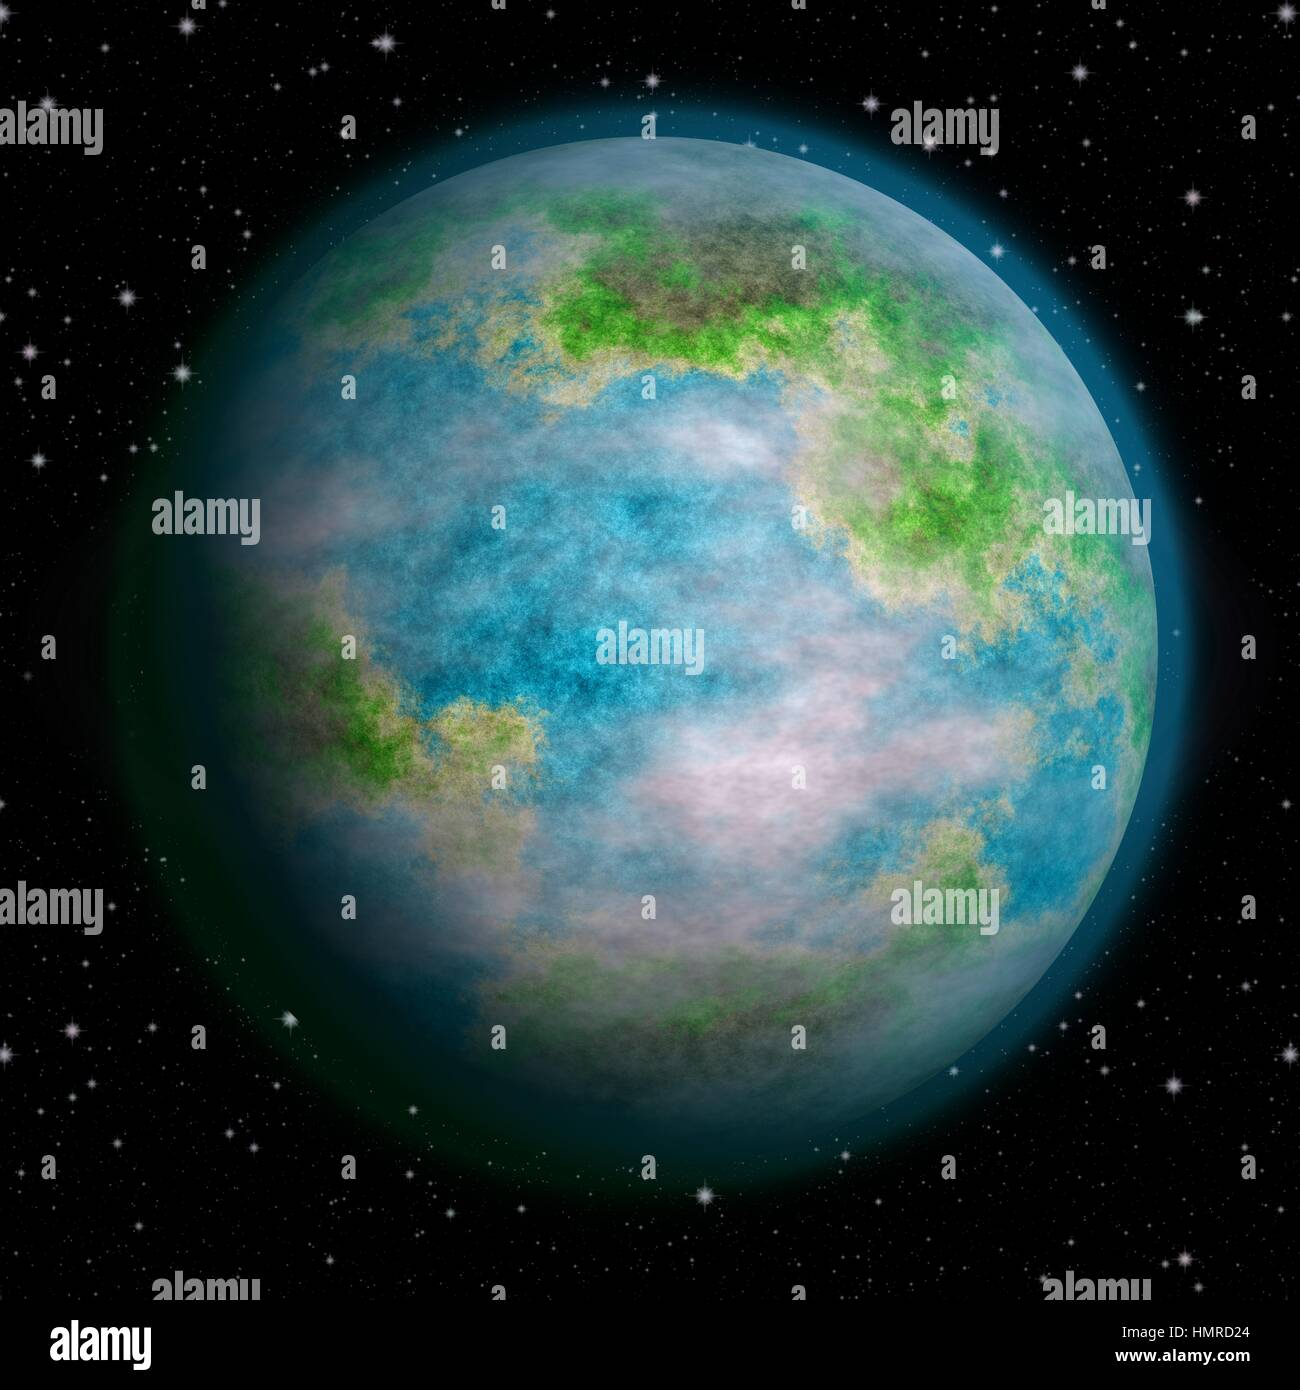 Realistic earth like planet texture Stock Photo: 133280844